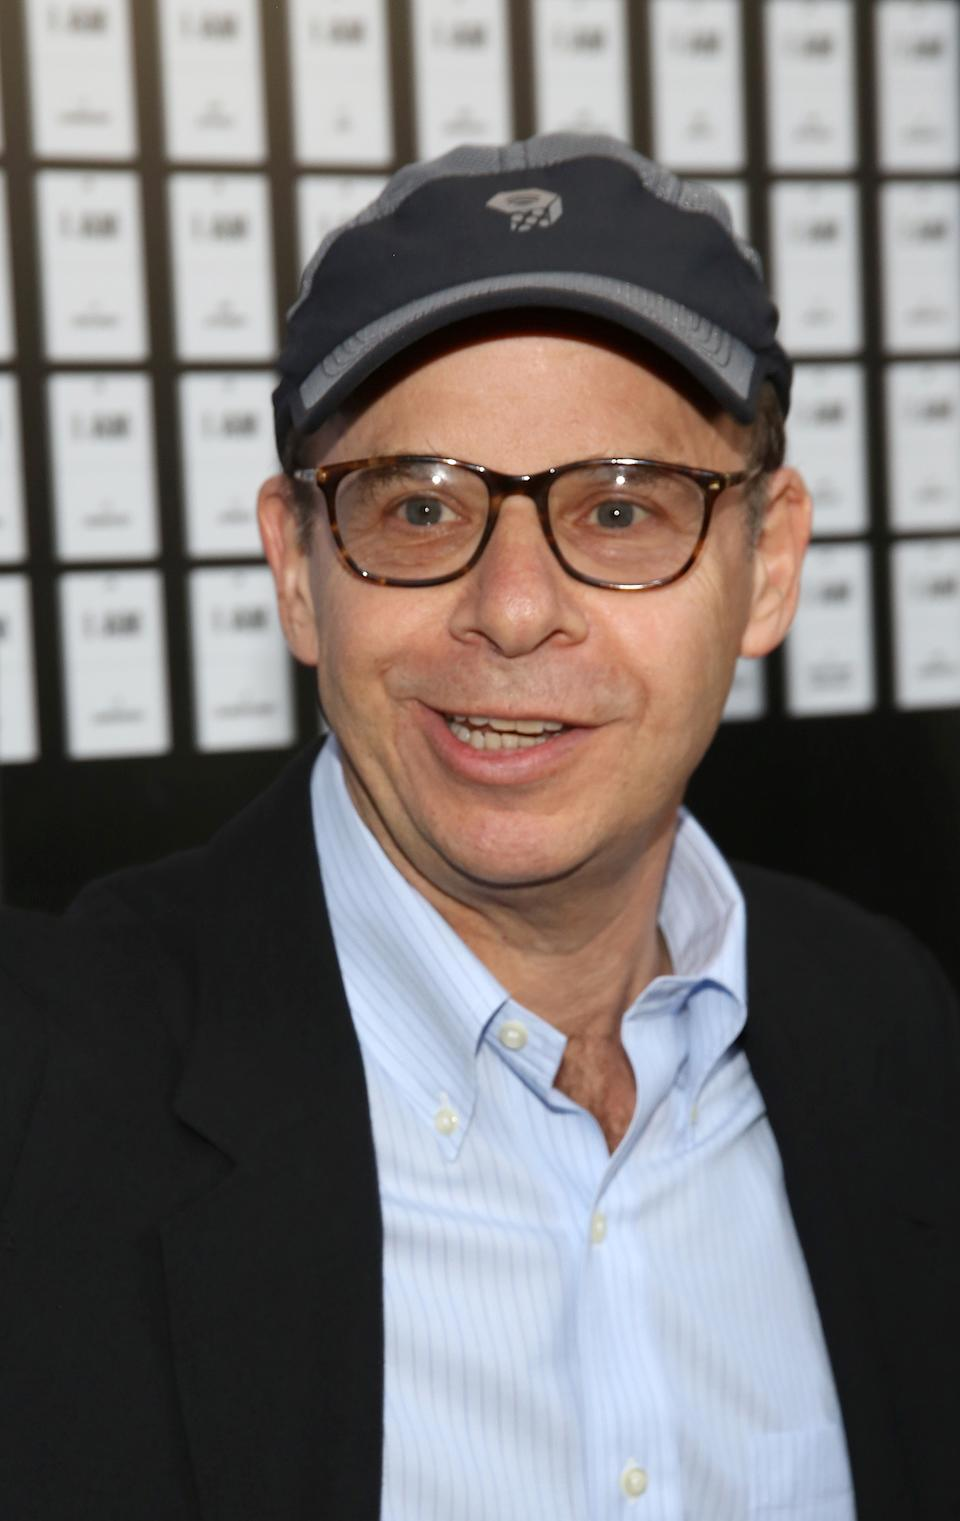 NEW YORK, NY - APRIL 12:  Rick Moranis attends the opening night of 'In & Of Itself' at the Daryl Roth Theatre on April 12, 2017 in New York City.  (Photo by Walter McBride/WireImage)